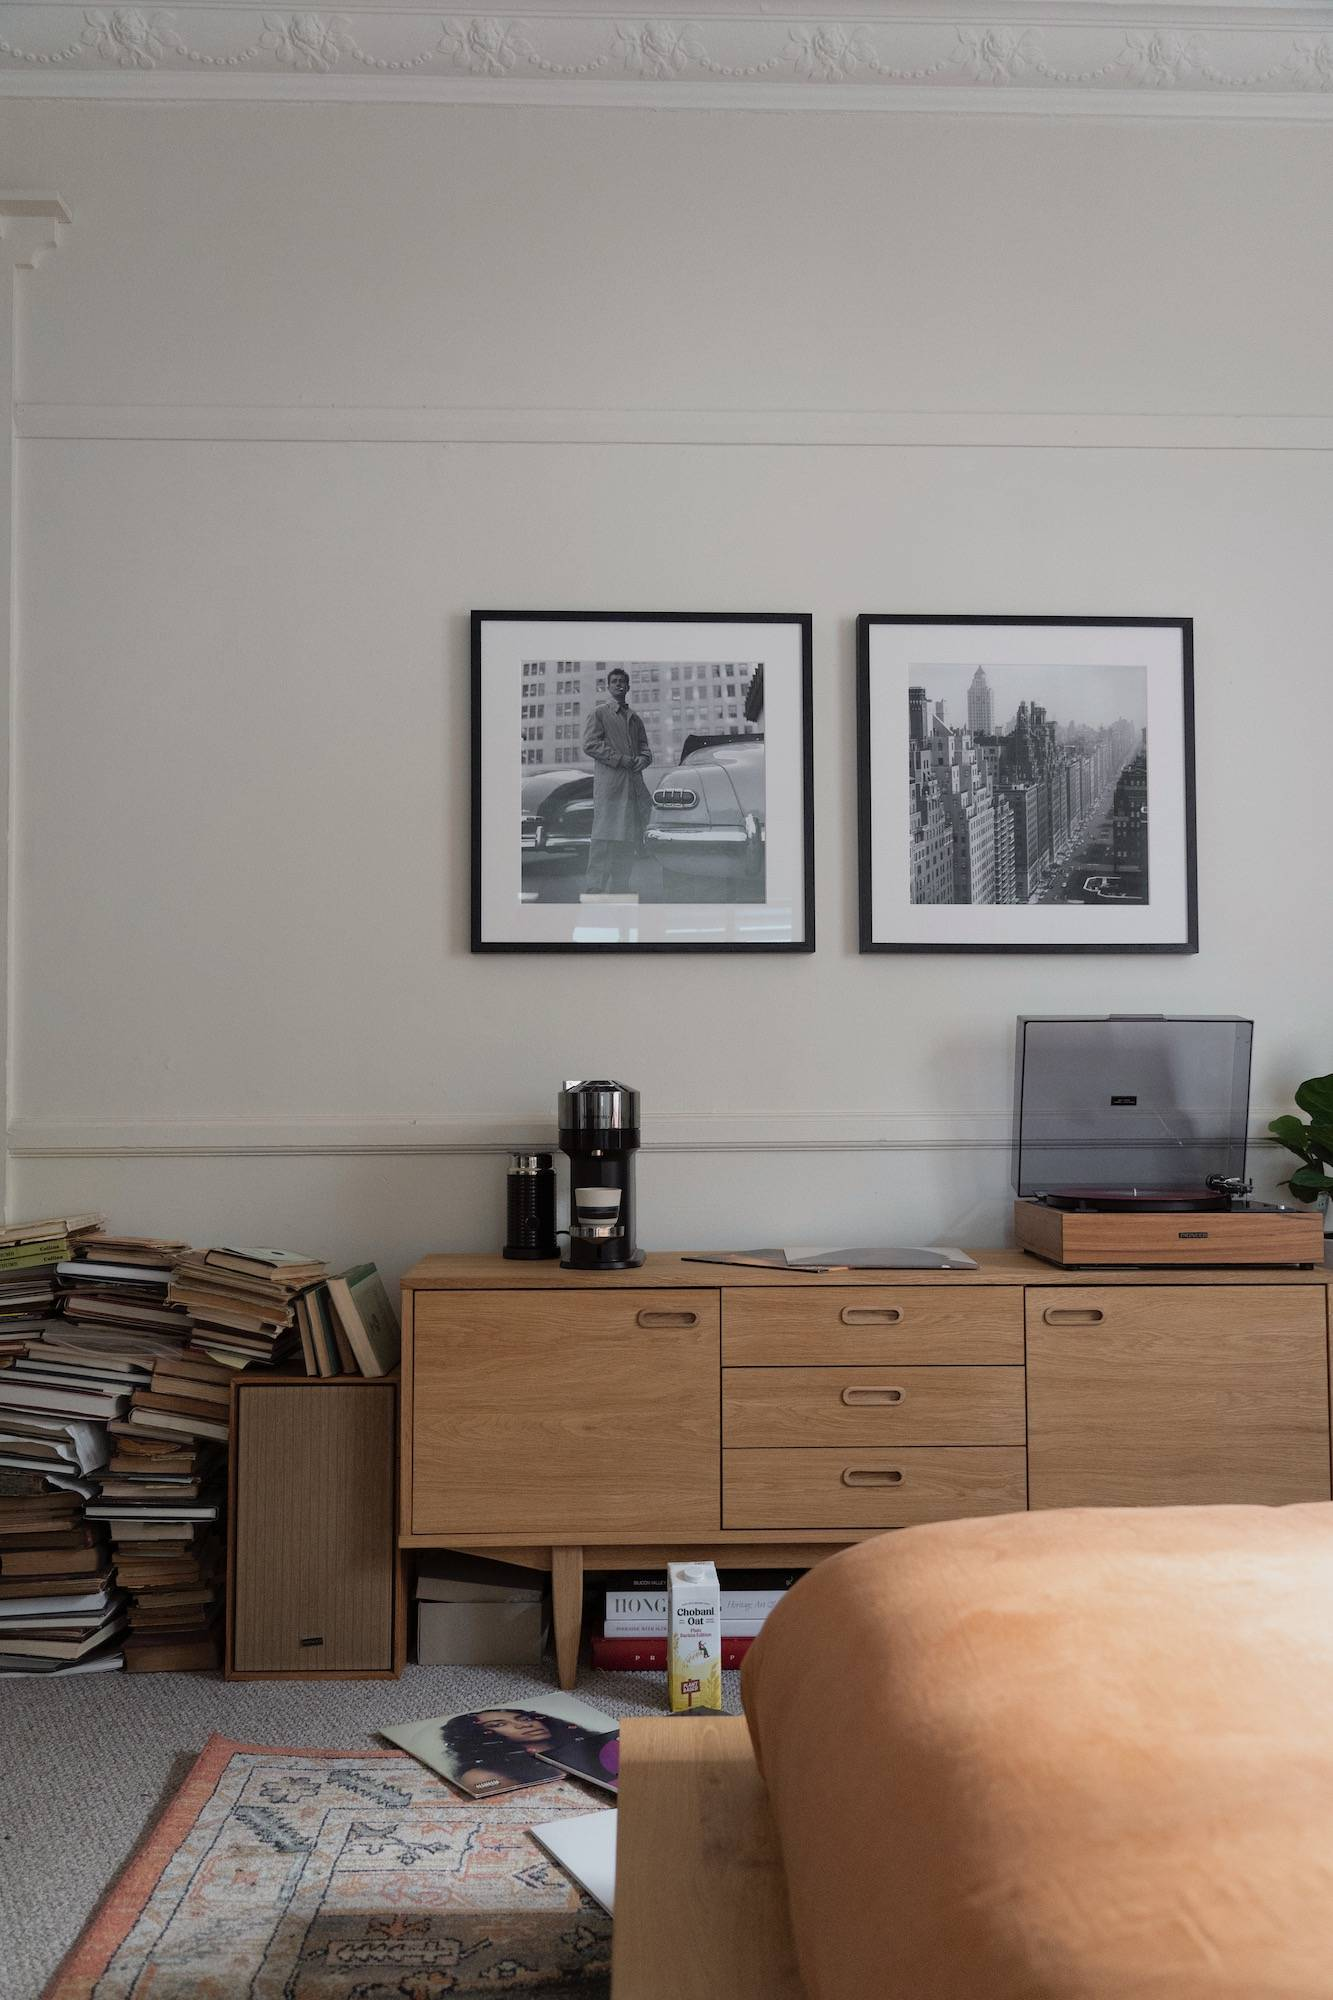 Black and white vintage Slim Aarons prints framed on the wall in the home of Jordan Turner.